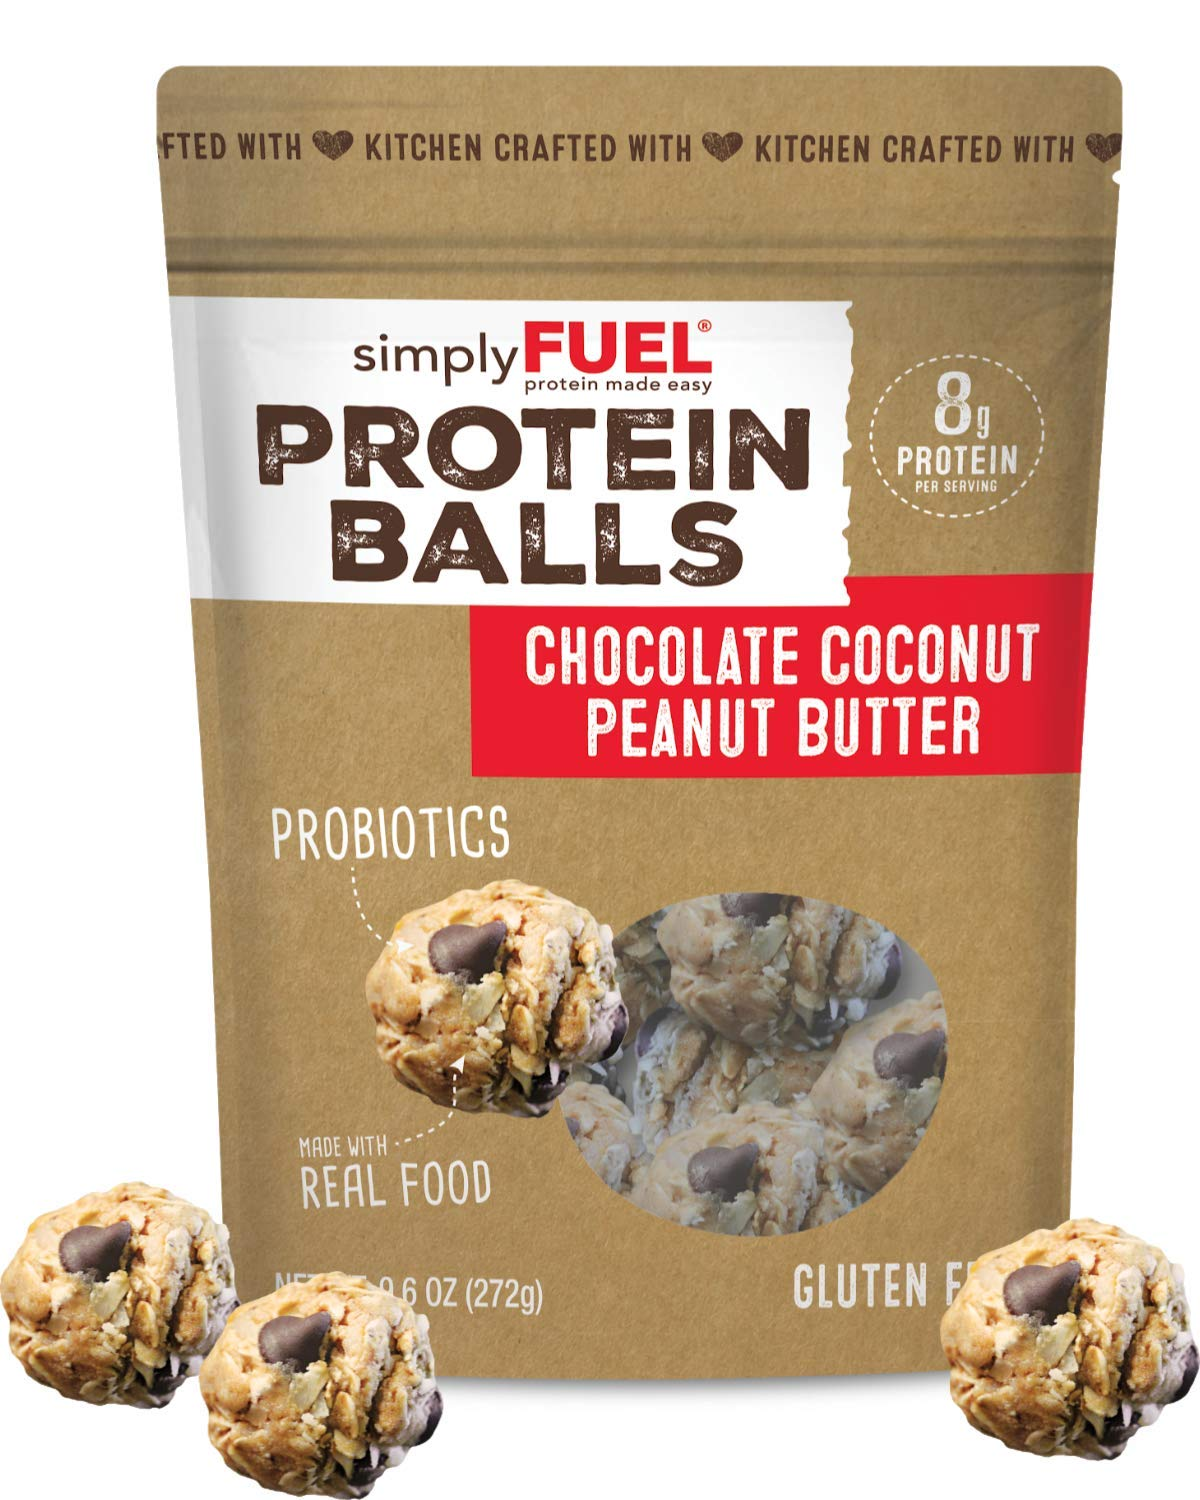 simplyFUEL Chocolate Coconut Peanut Butter Protein Balls   1 Pack of 12 Balls   Gluten Free   Probiotic + High Protein Whole Food Snack   Certified Organic Ingredients   8 g Whole Food Protein